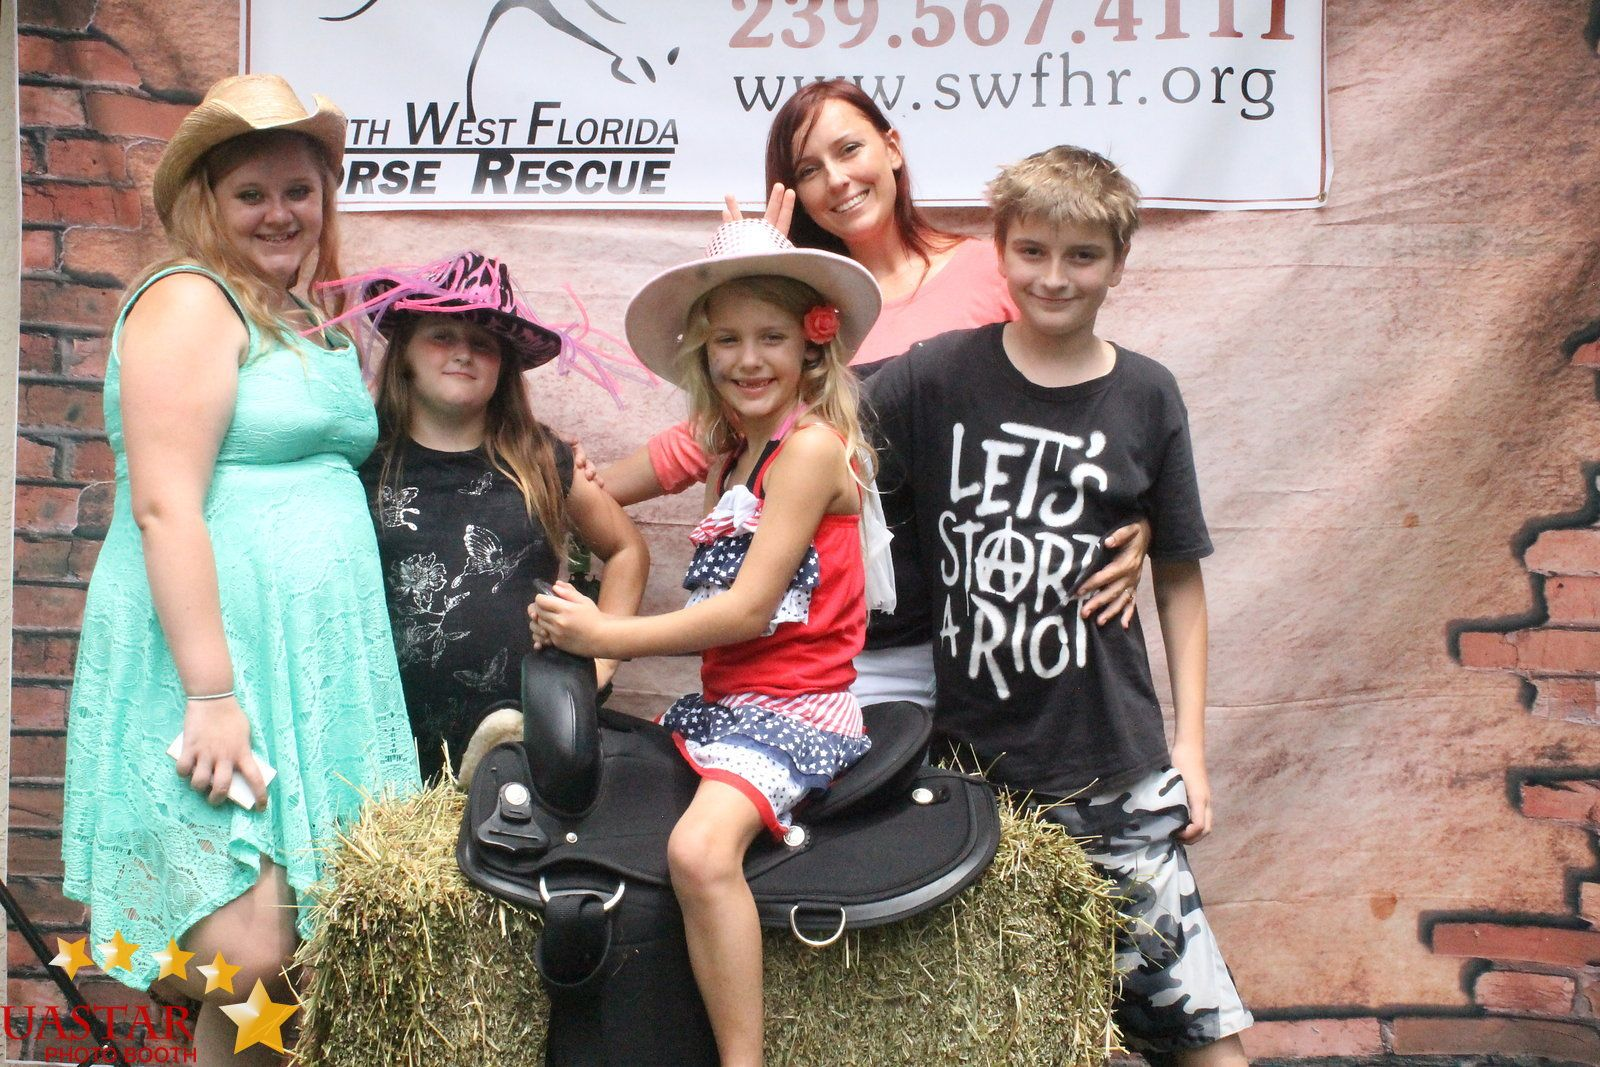 South West Florida Horse Rescue  photo collection by UaStar Photo Booth